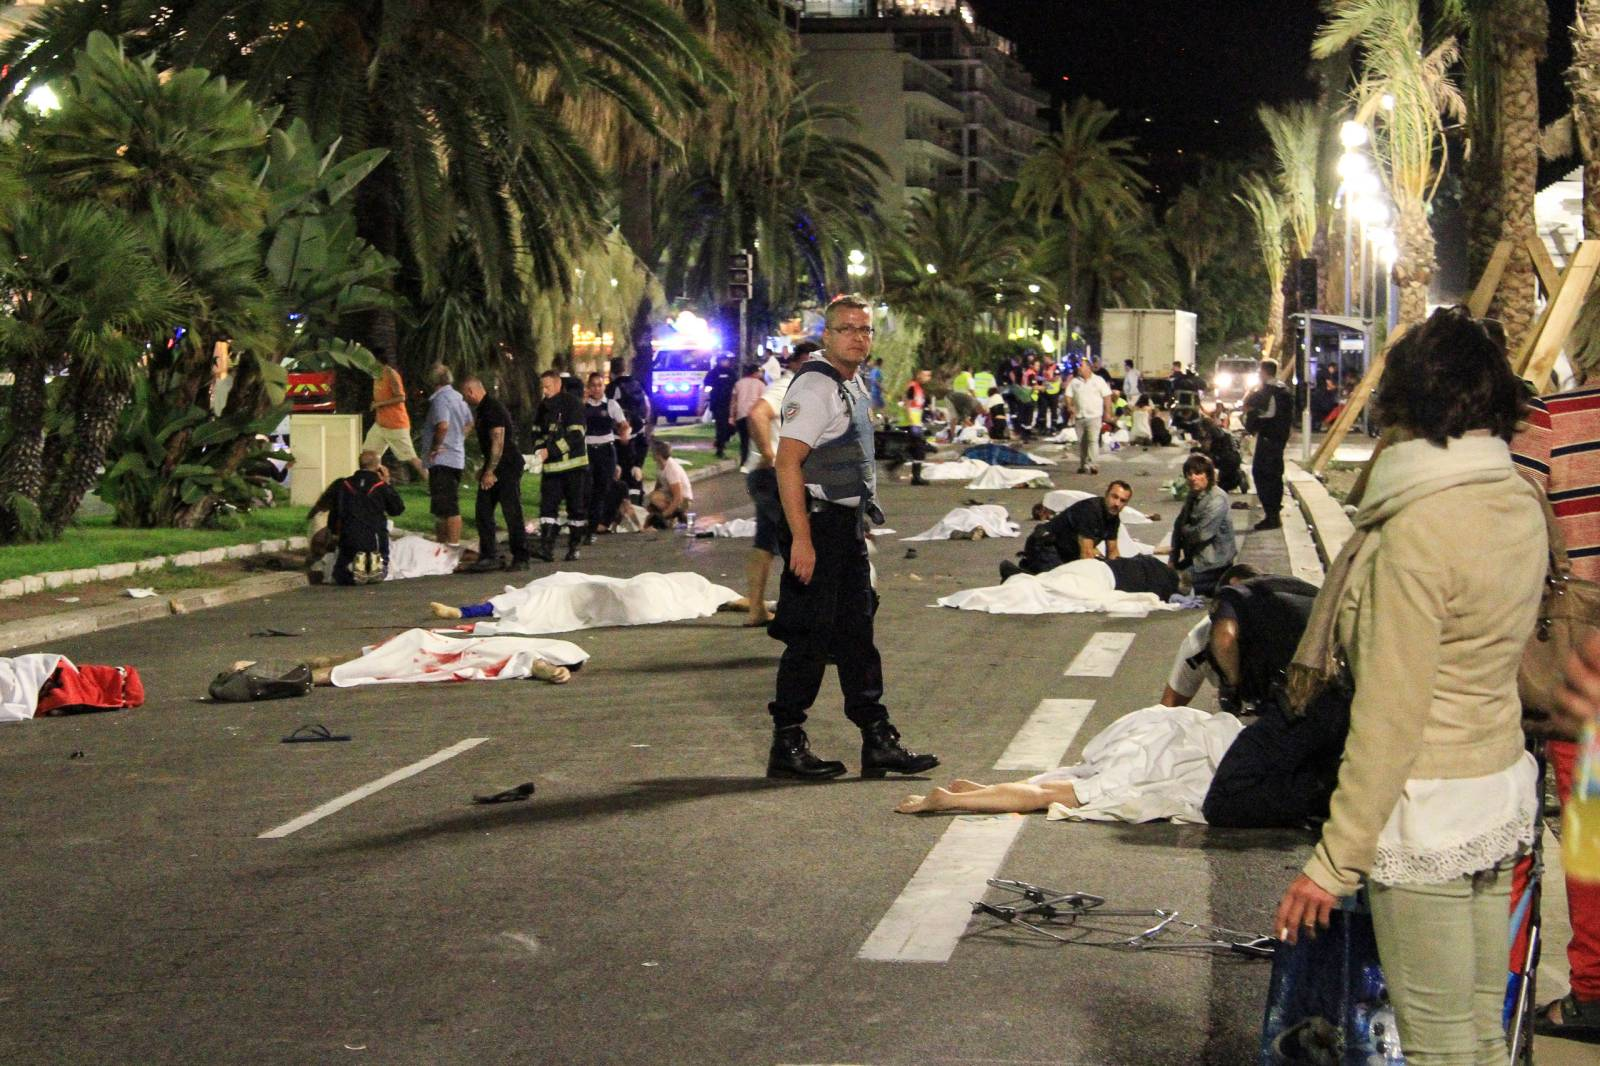 More than 80 people were killed in the July 14 terrorist attack in the southern French city of Nice